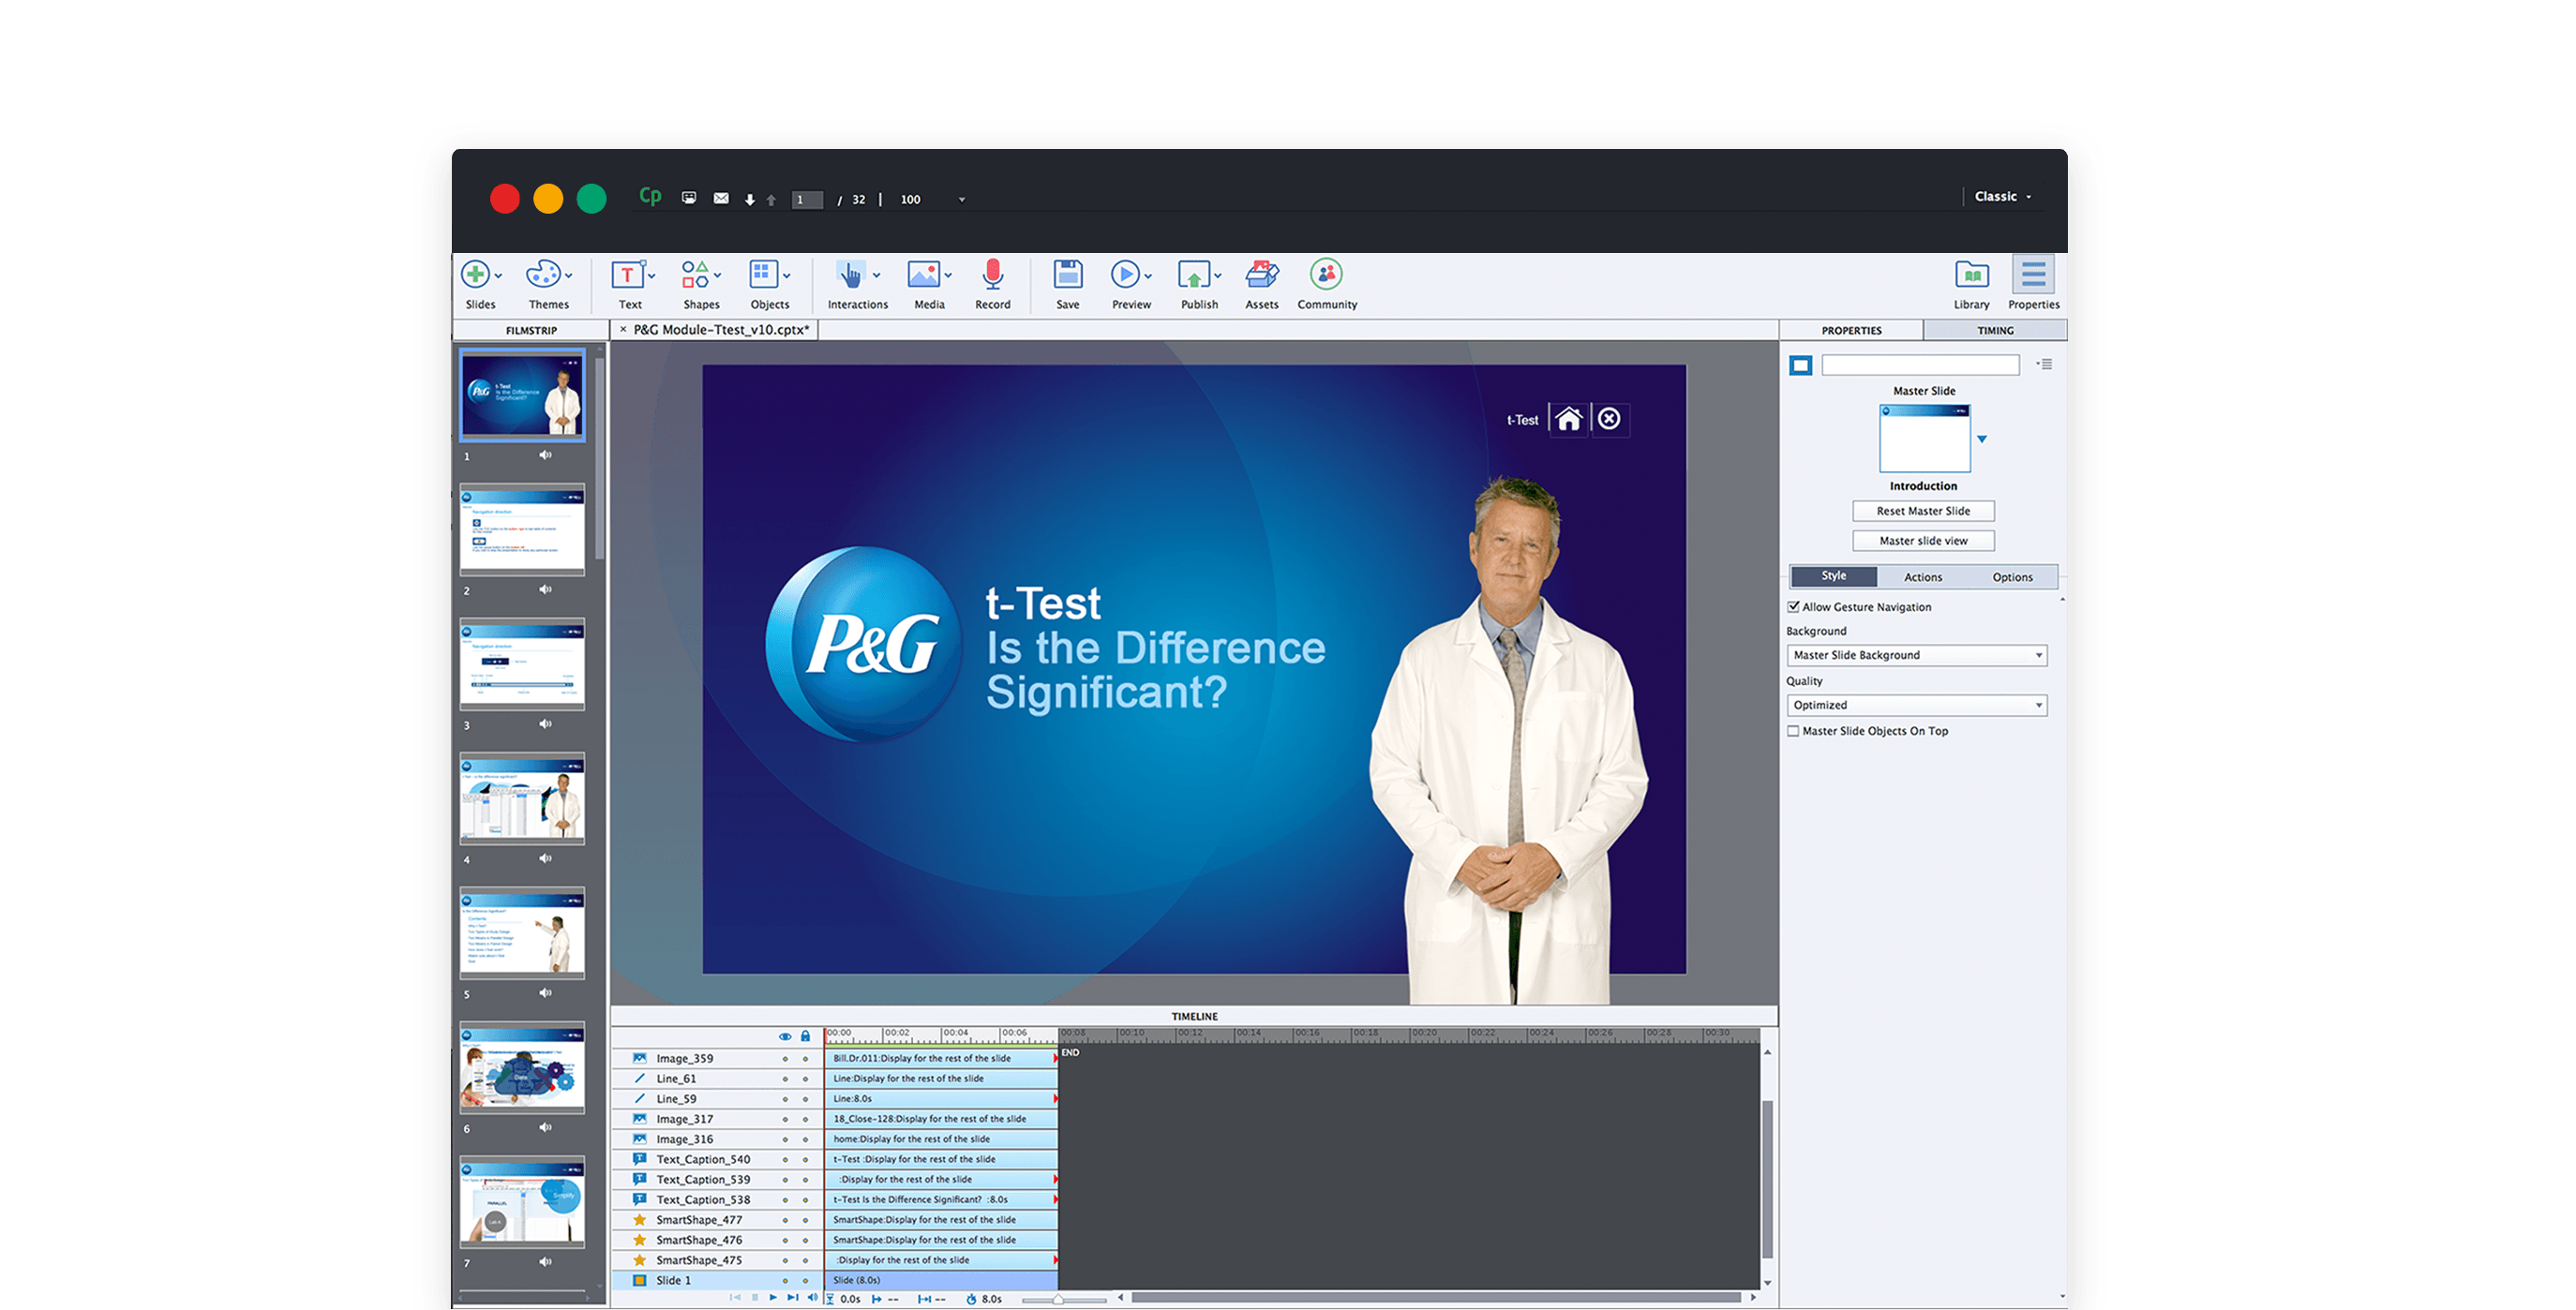 Procter and Gamble E-Learning Application 1